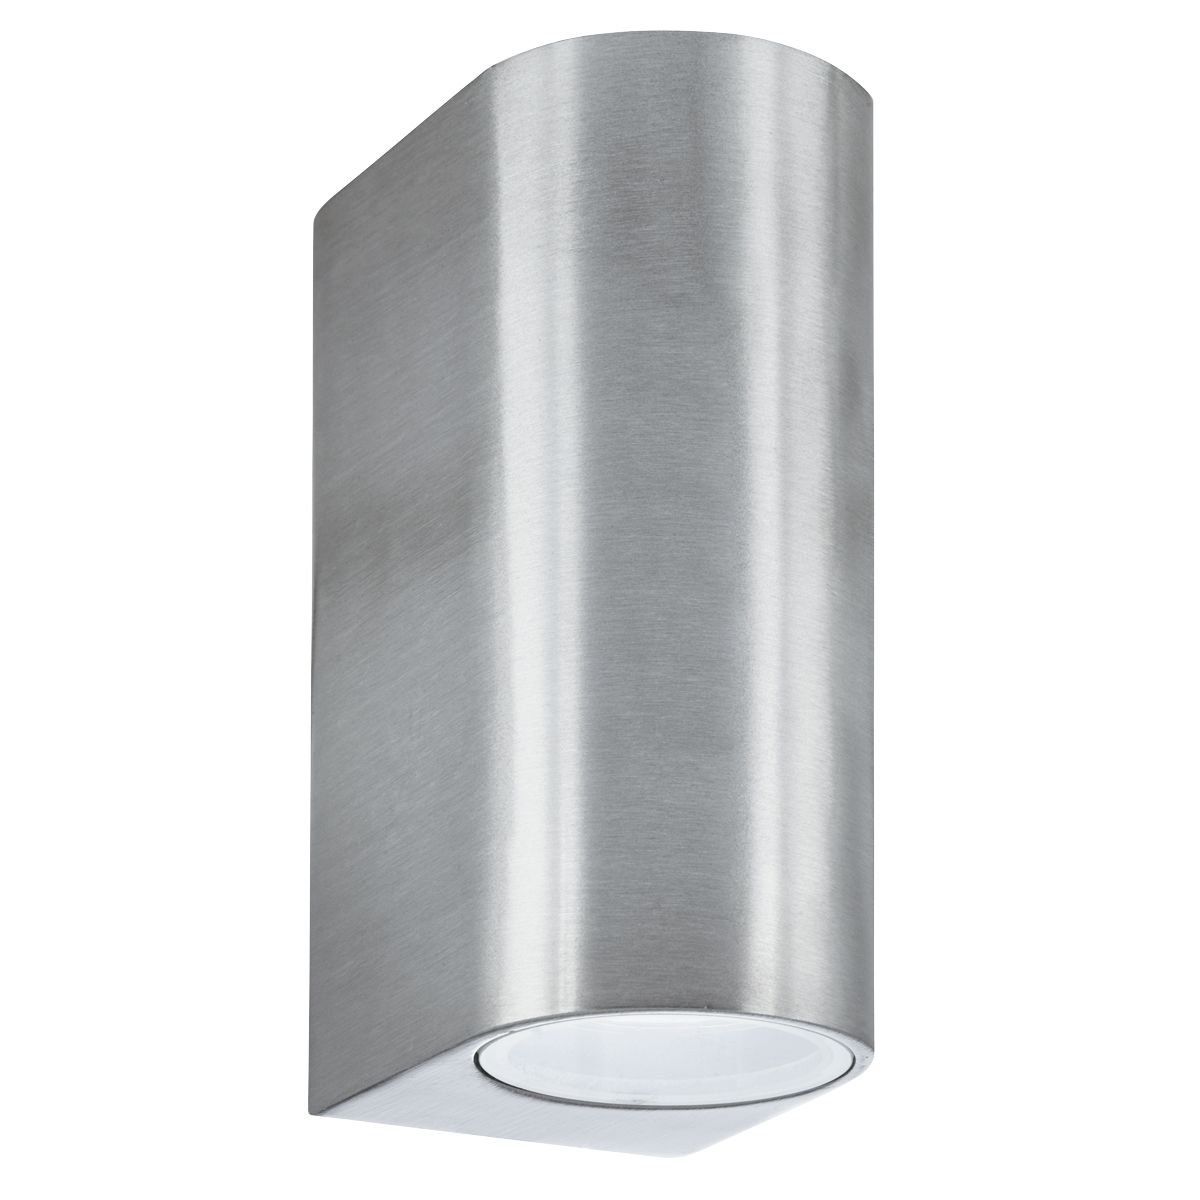 Silver Ip44 2 Light Outdoor Light With Die Cast Aluminium & Fixed Glass Lens